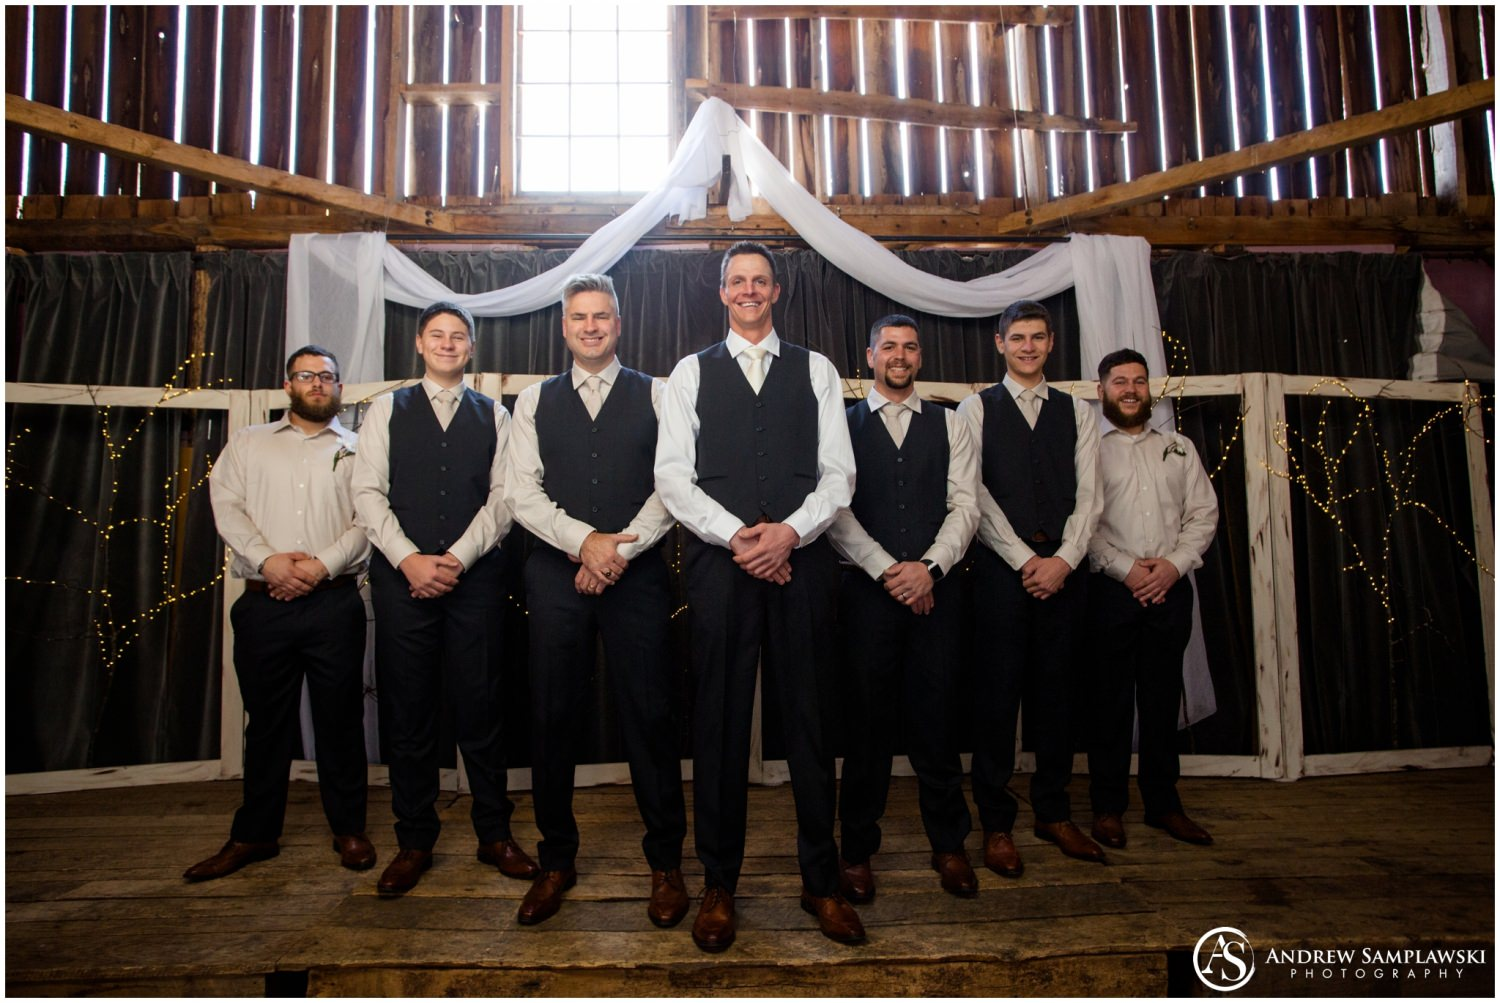 Enchanted barn wedding andrew samplawski photography